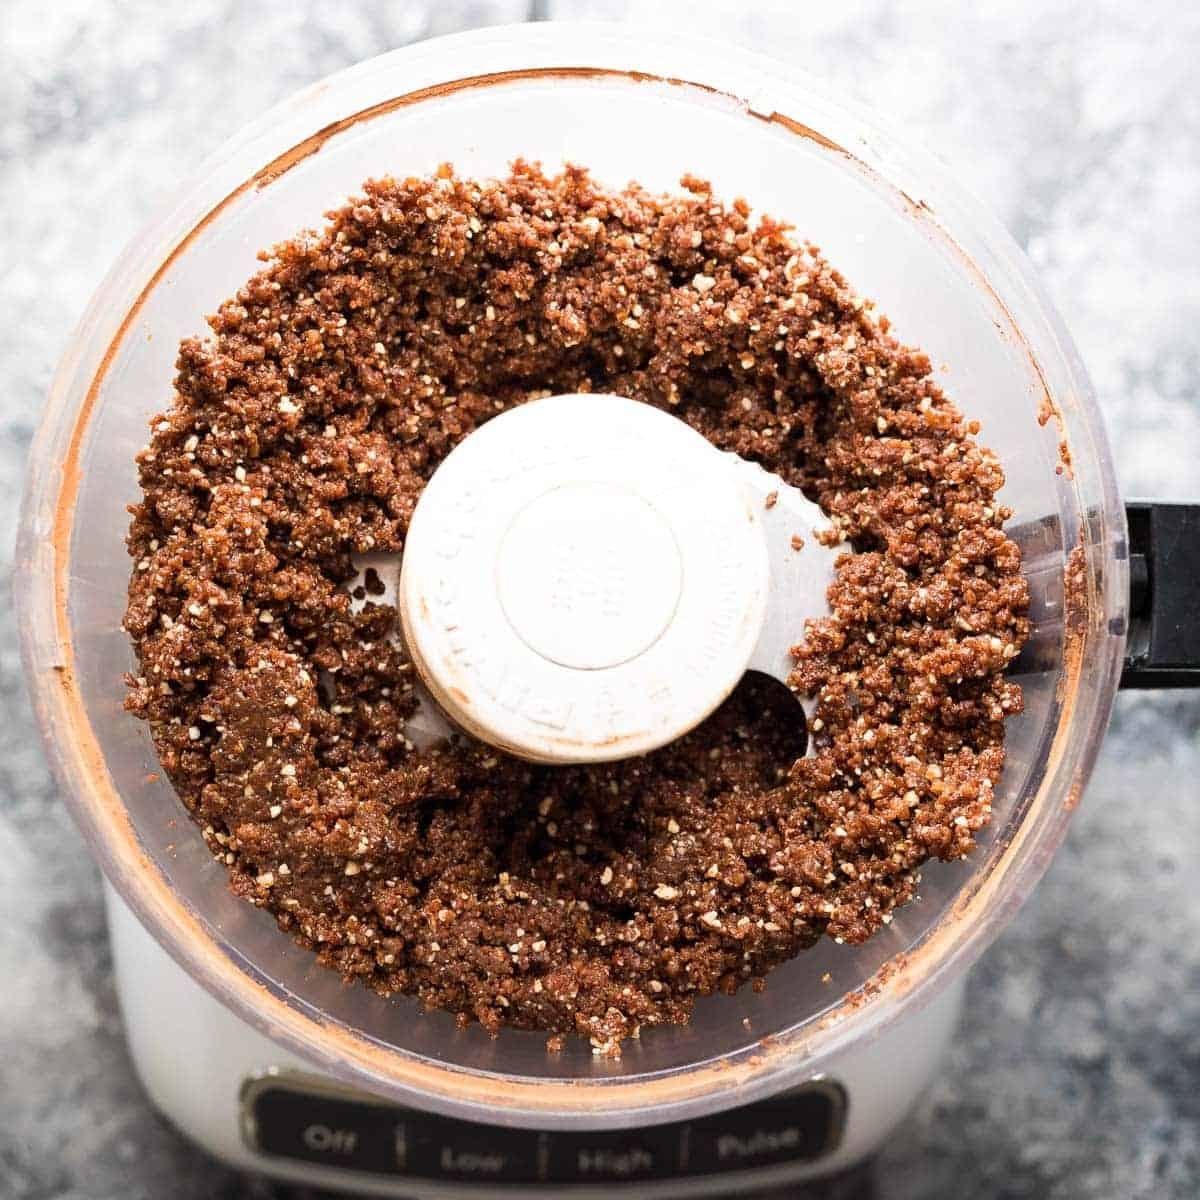 fudgy, with a little crunch from toasted quinoa, and a sprinkling of sea salt on top